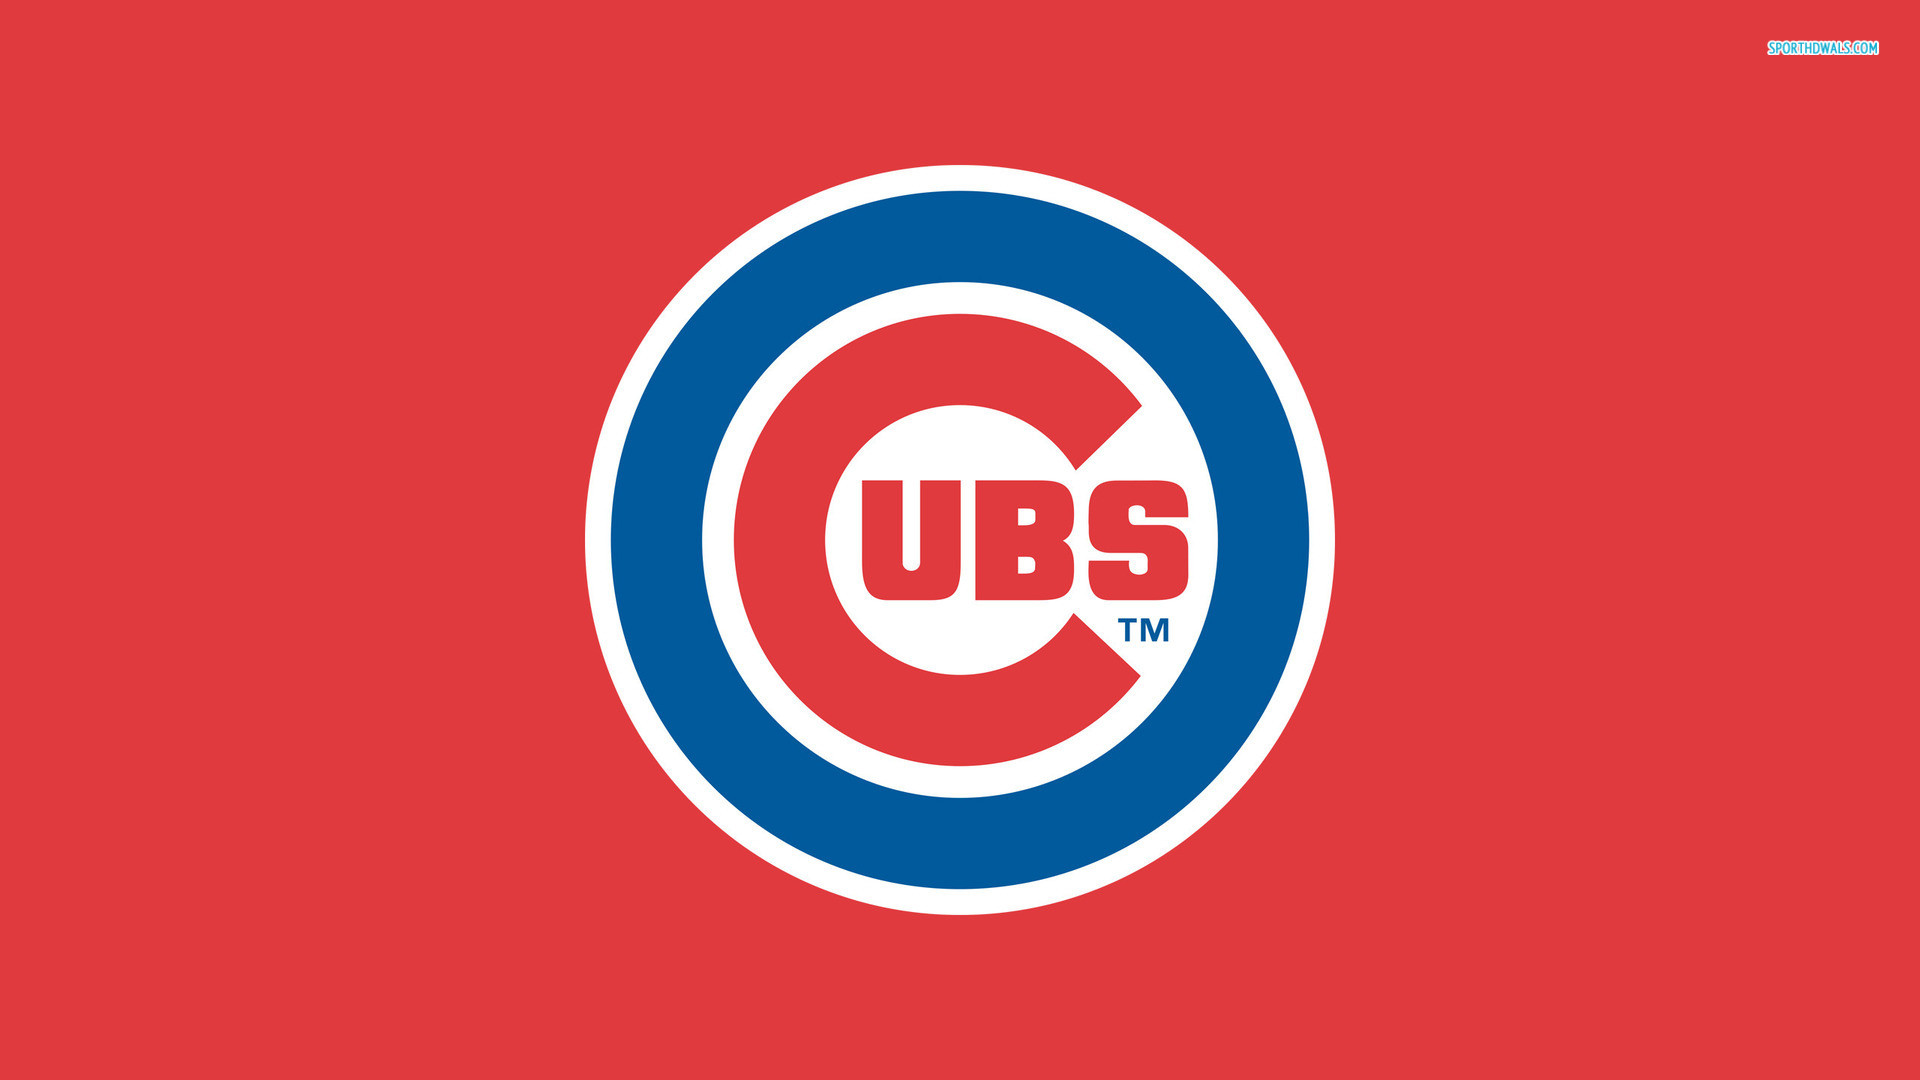 New Chicago Cubs Wallpaper View #993603 Wallpapers | RiseWLP